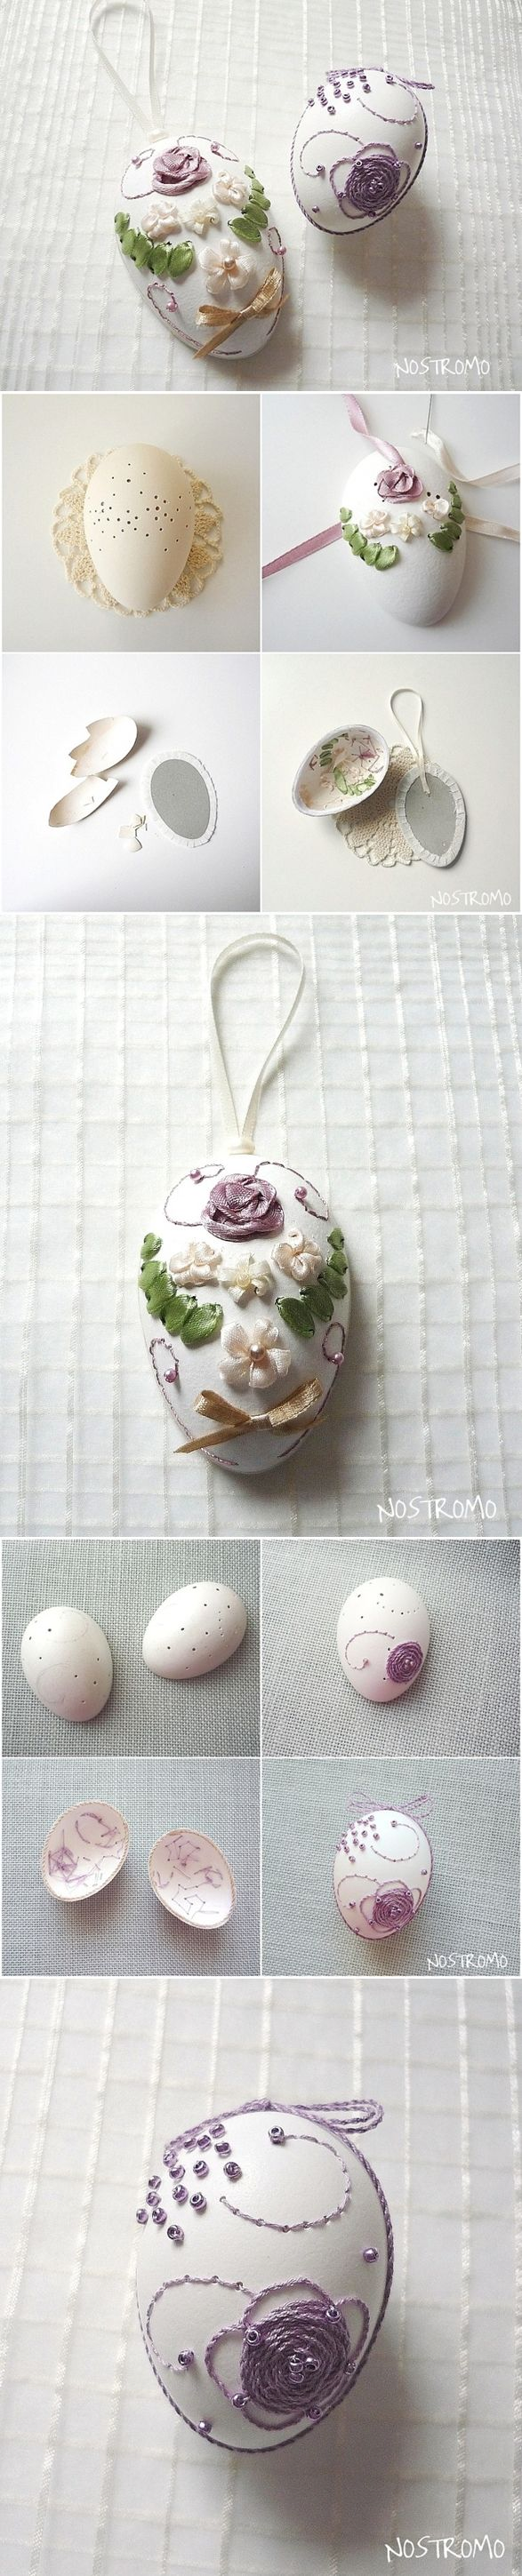 Eggshell Embroidery Tutorial